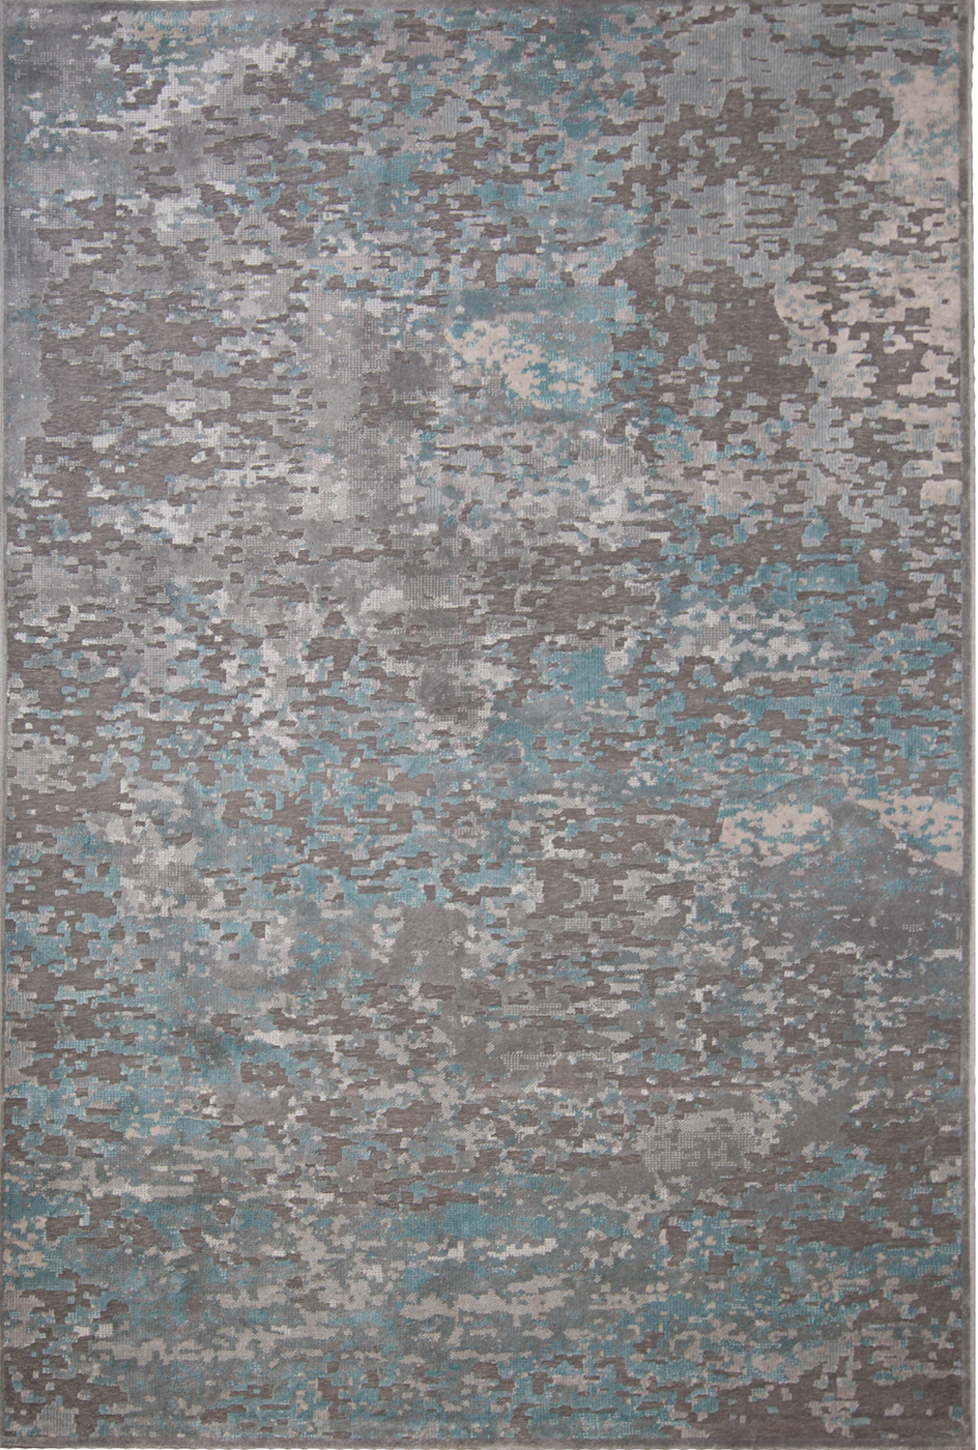 geometric the will nicole presented tastefully perfectly itm collection gray rug your designer synergy white woven frame with area by miller space designs these shag carpet flokati waves are rugs of